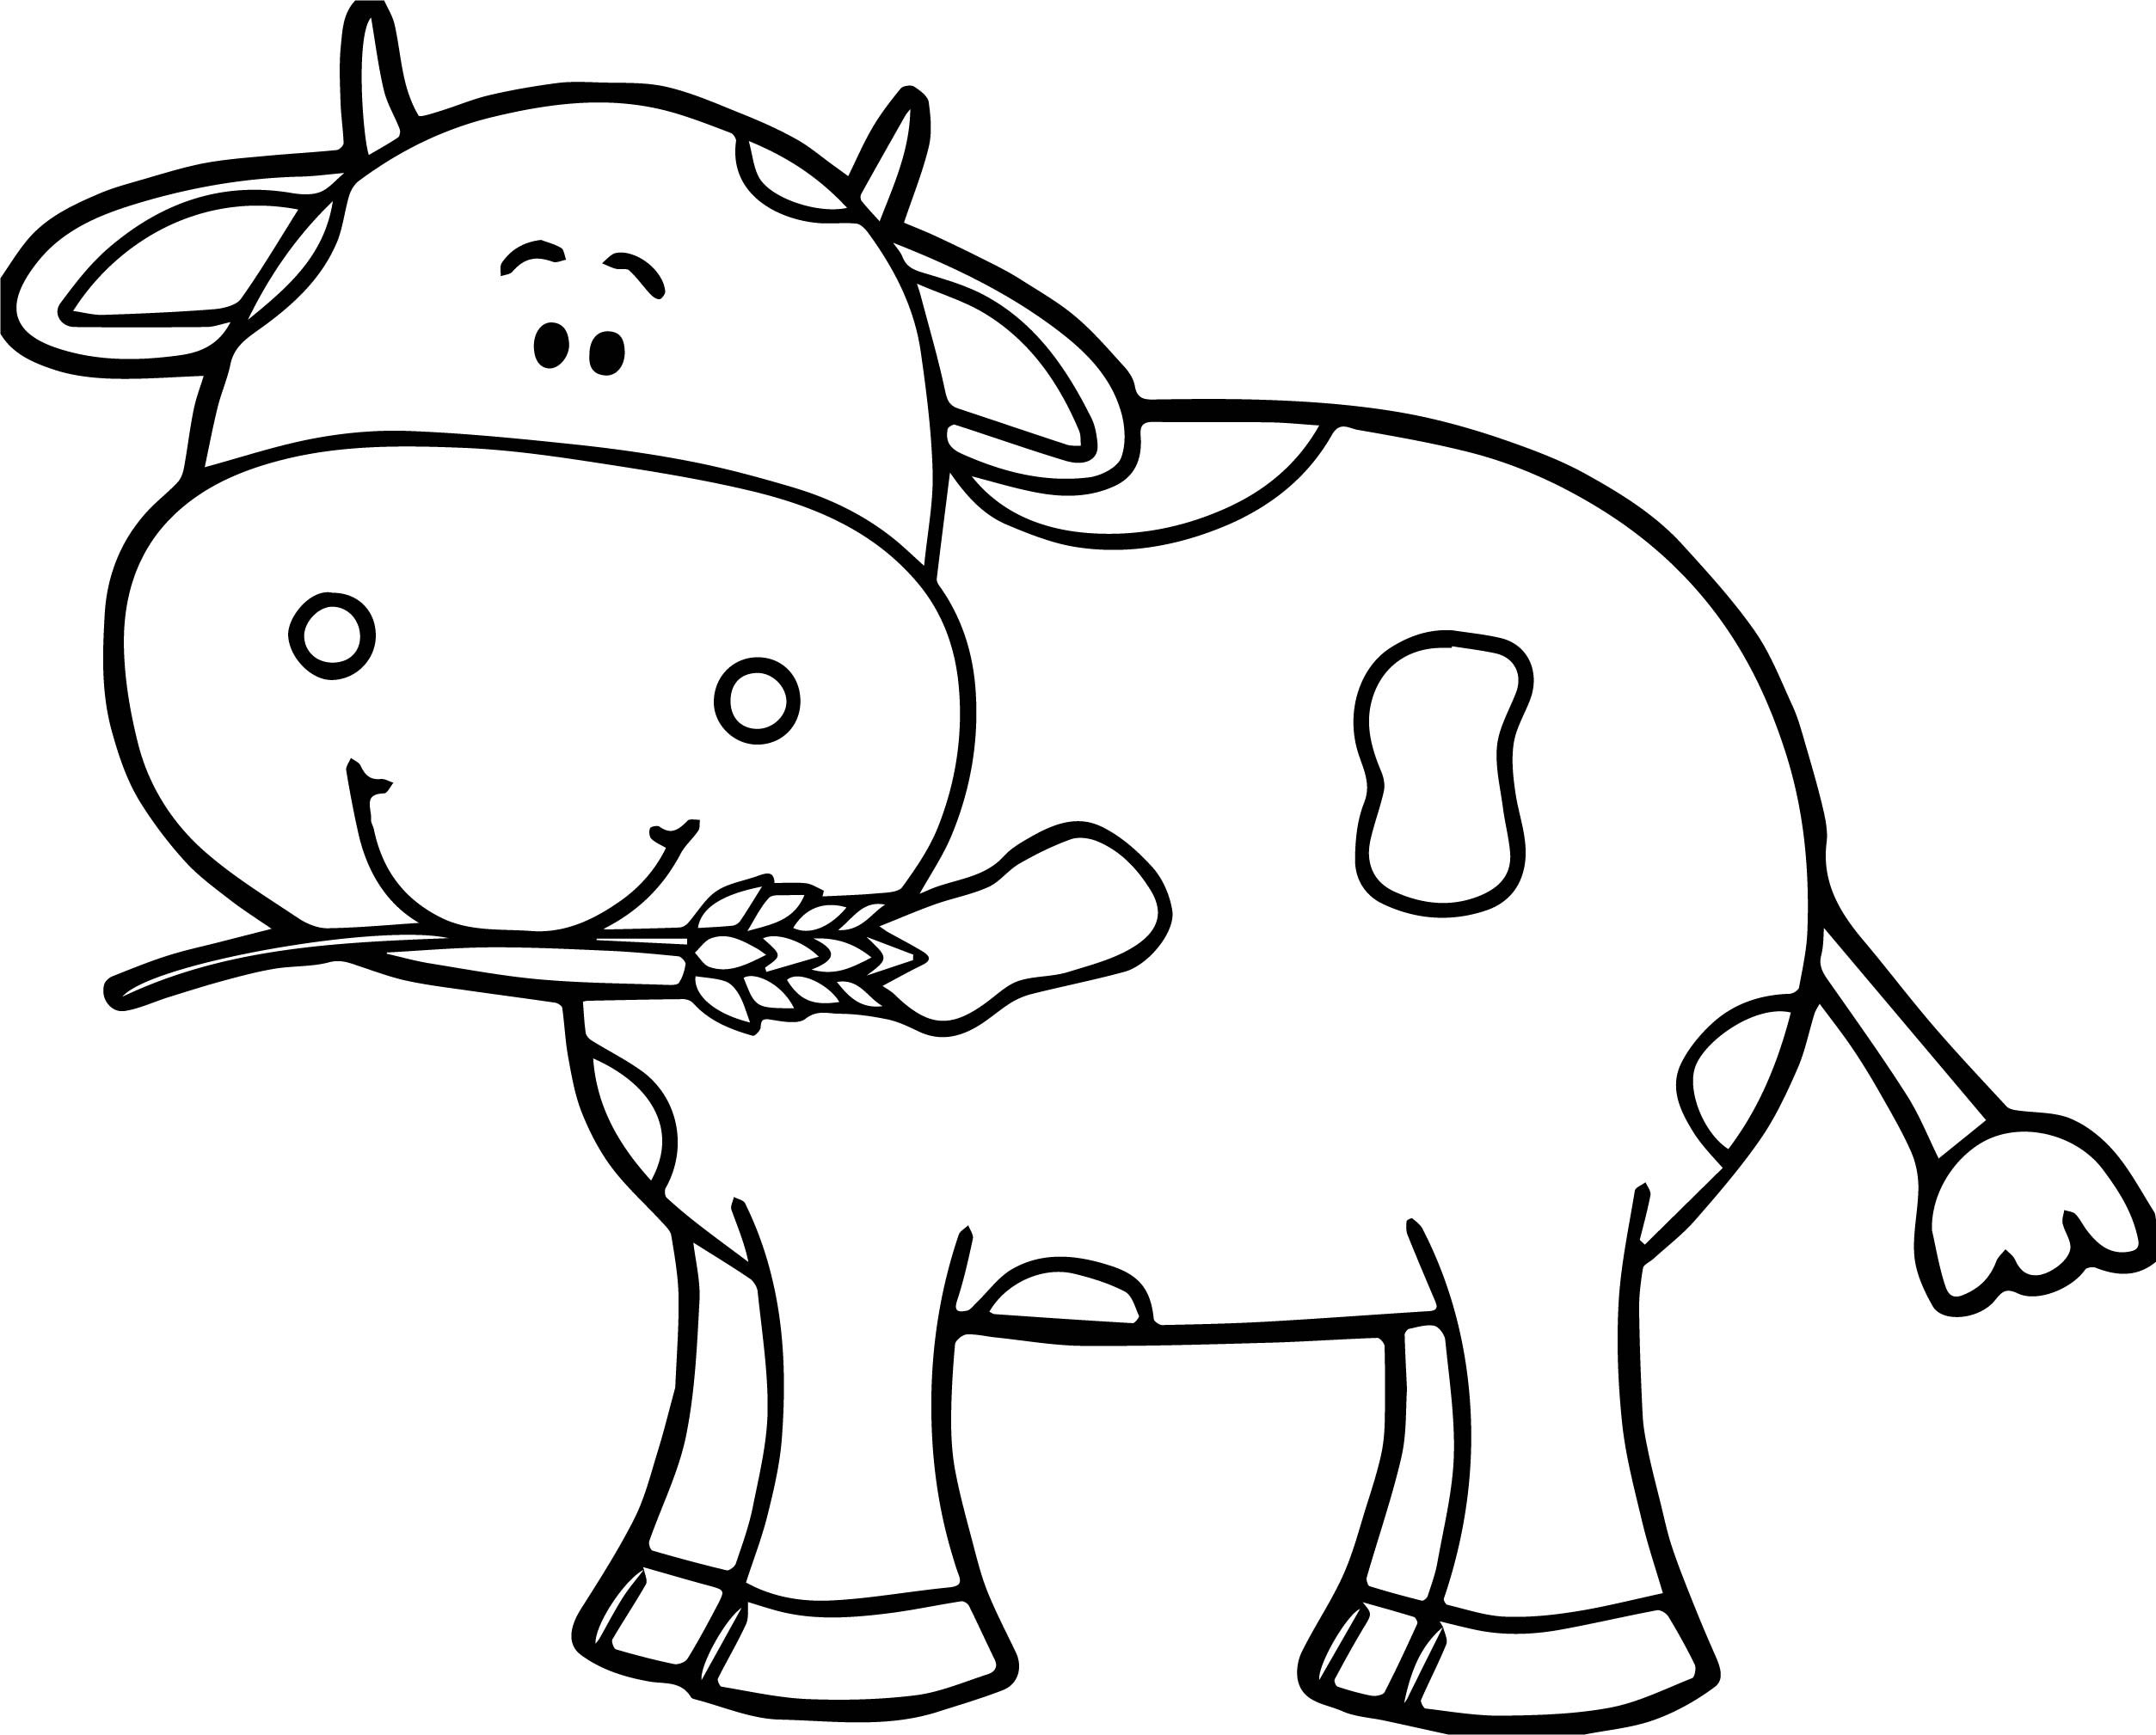 coloring picture of cow free printable cow coloring pages for kids cool2bkids picture coloring cow of